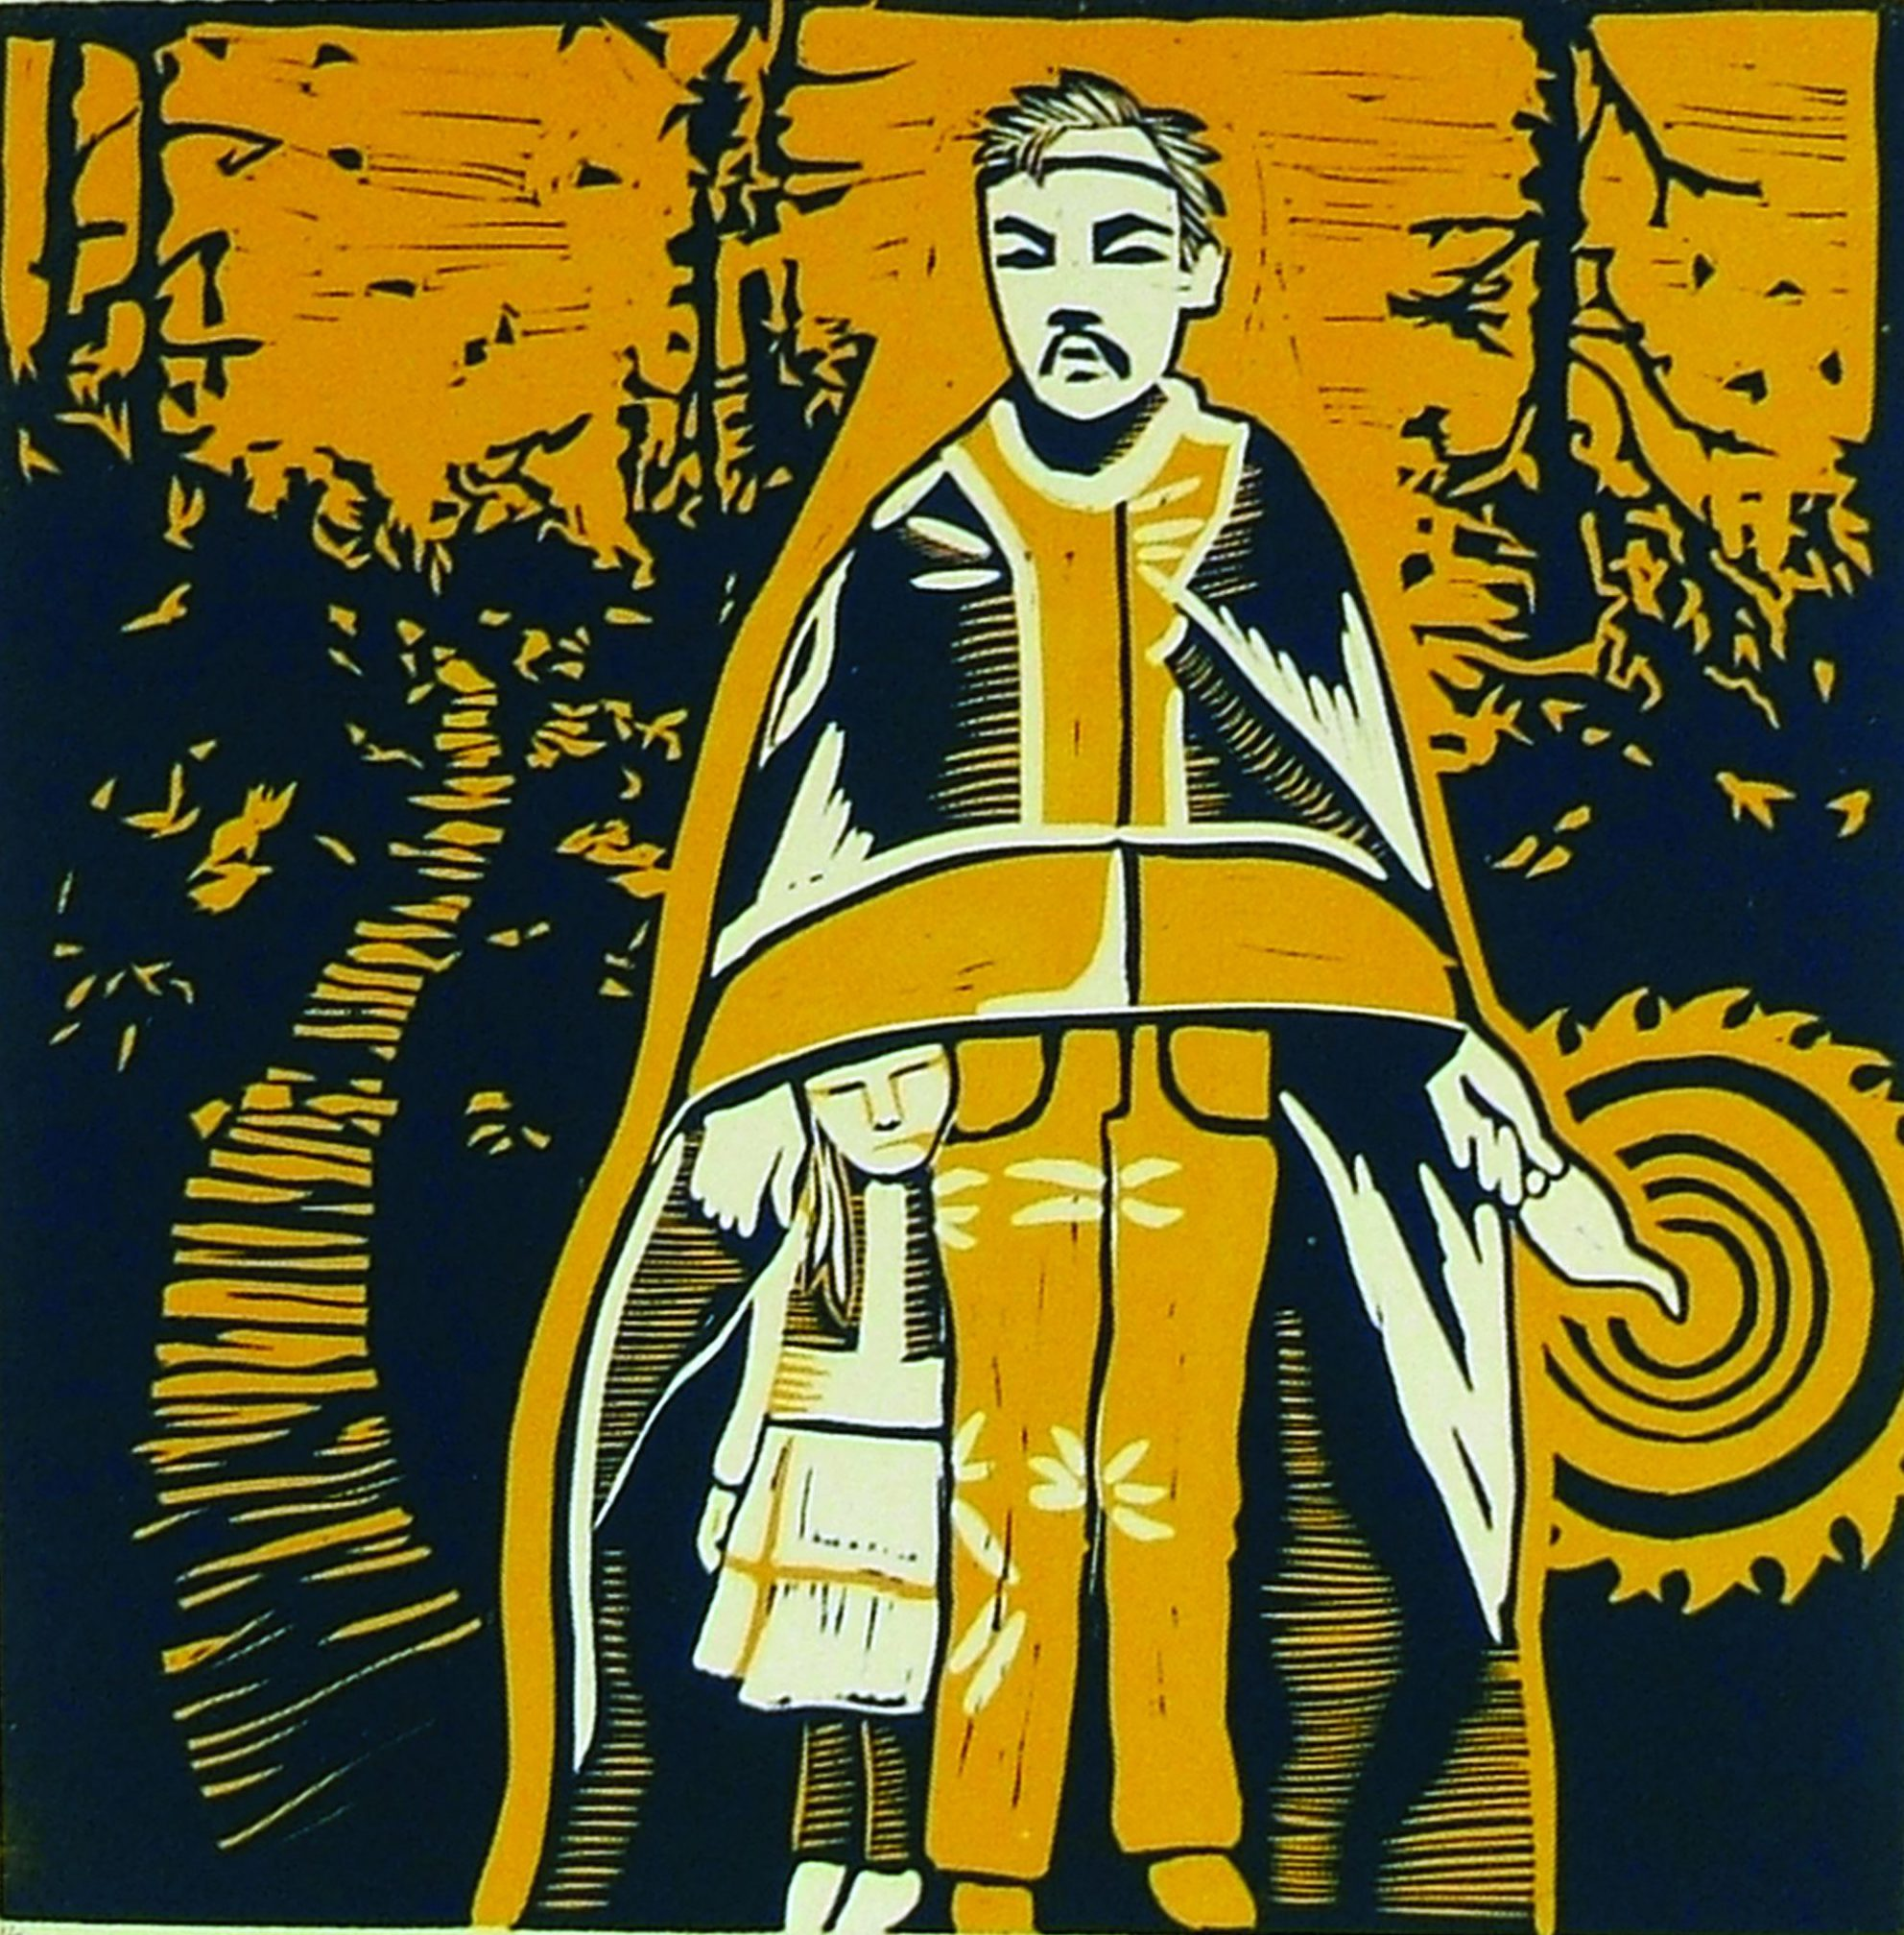 man in ceremonial clothing with child sheltered under robes, path leading to woods behind